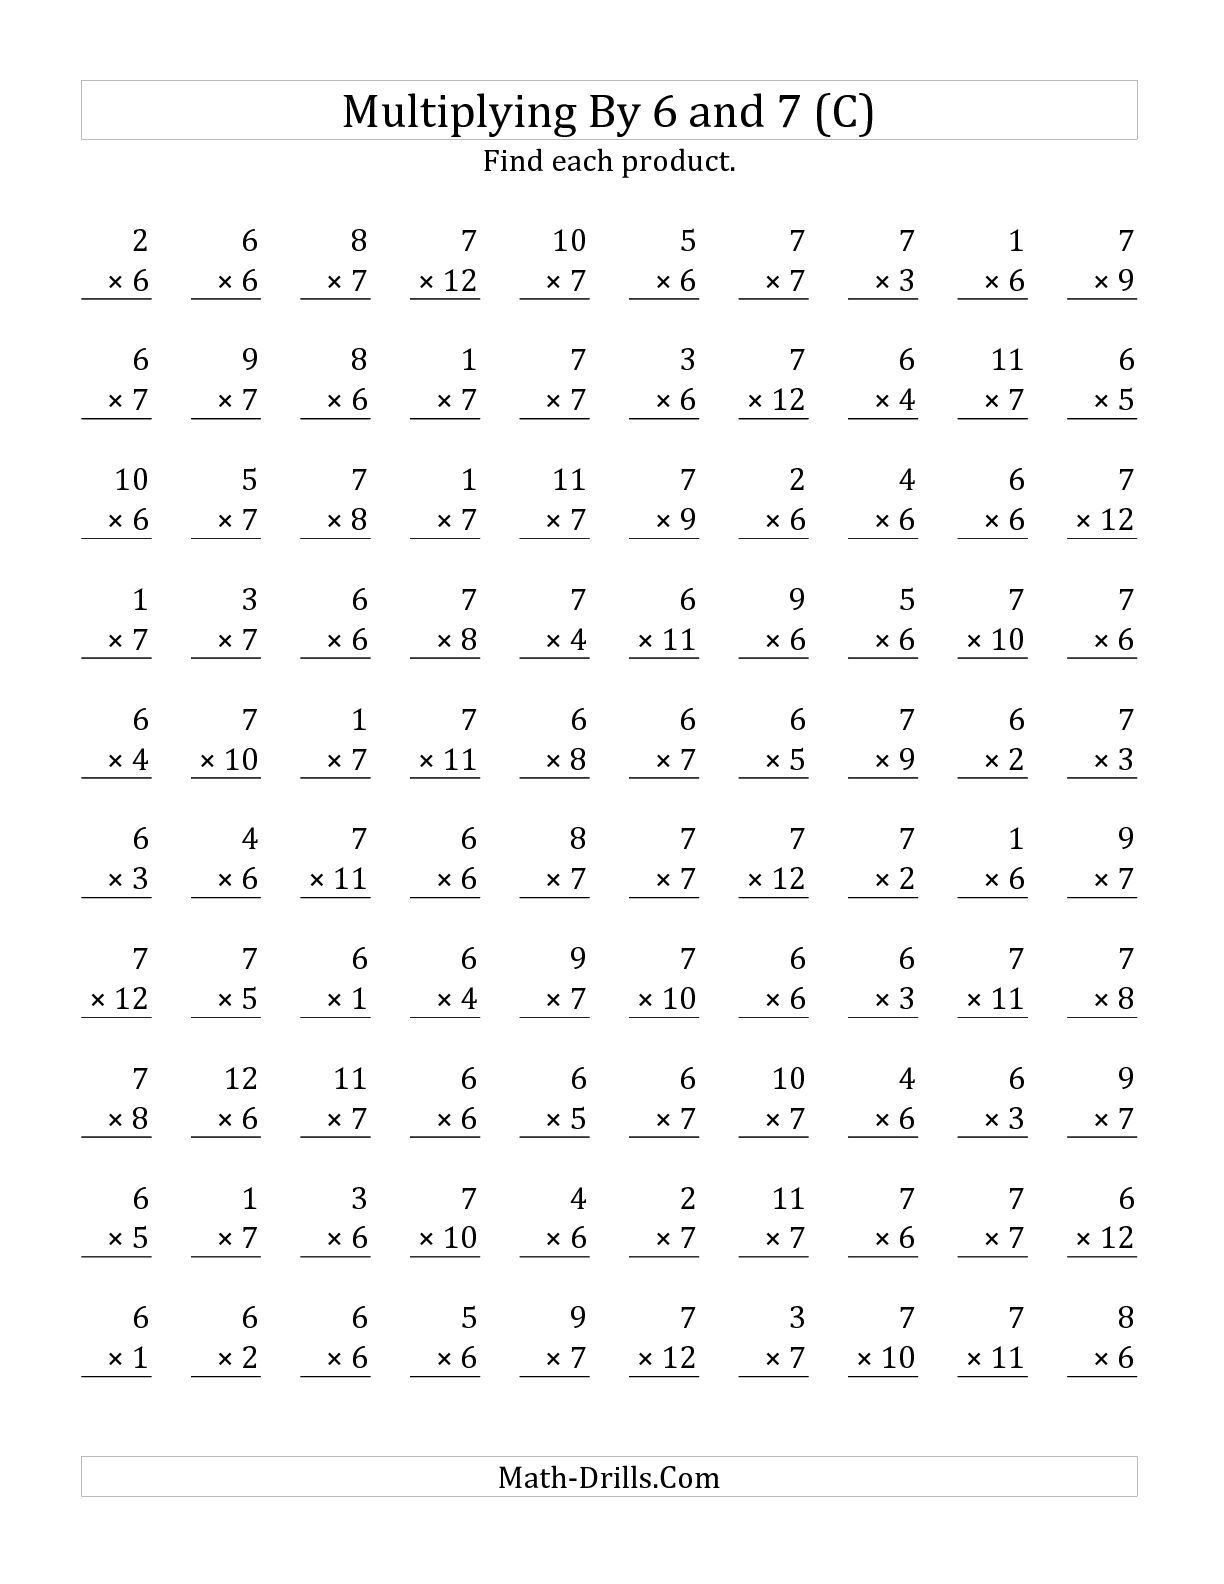 Uncategorized Math Pyramid Worksheet the multiplying 1 to 12 by 6 and 7 c math worksheet from the